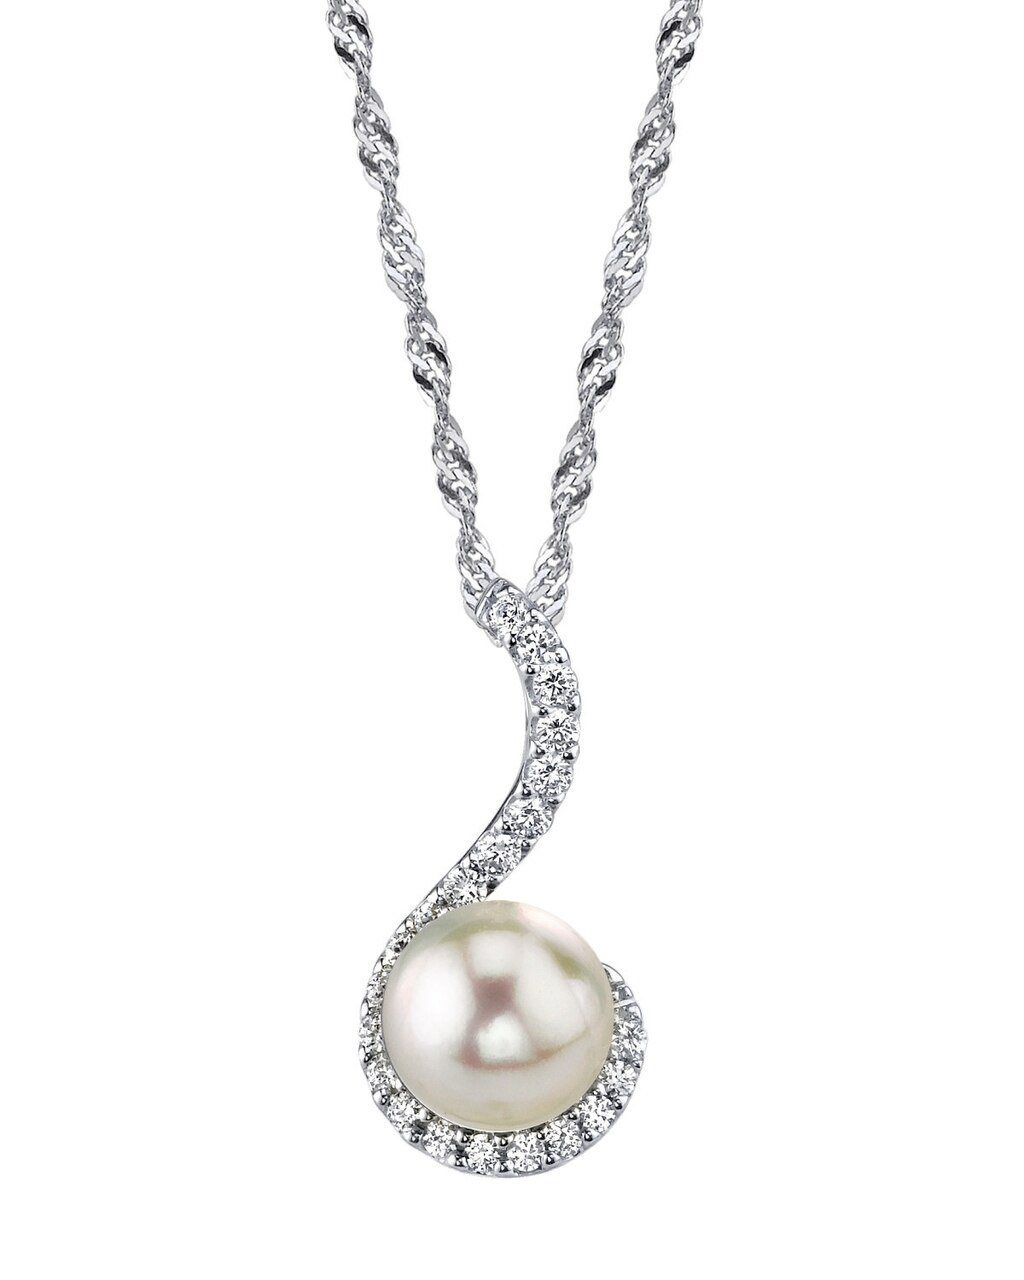 This classic pendant features a 10.0mm Freshwater  Pearl, handpicked for its luminous luster